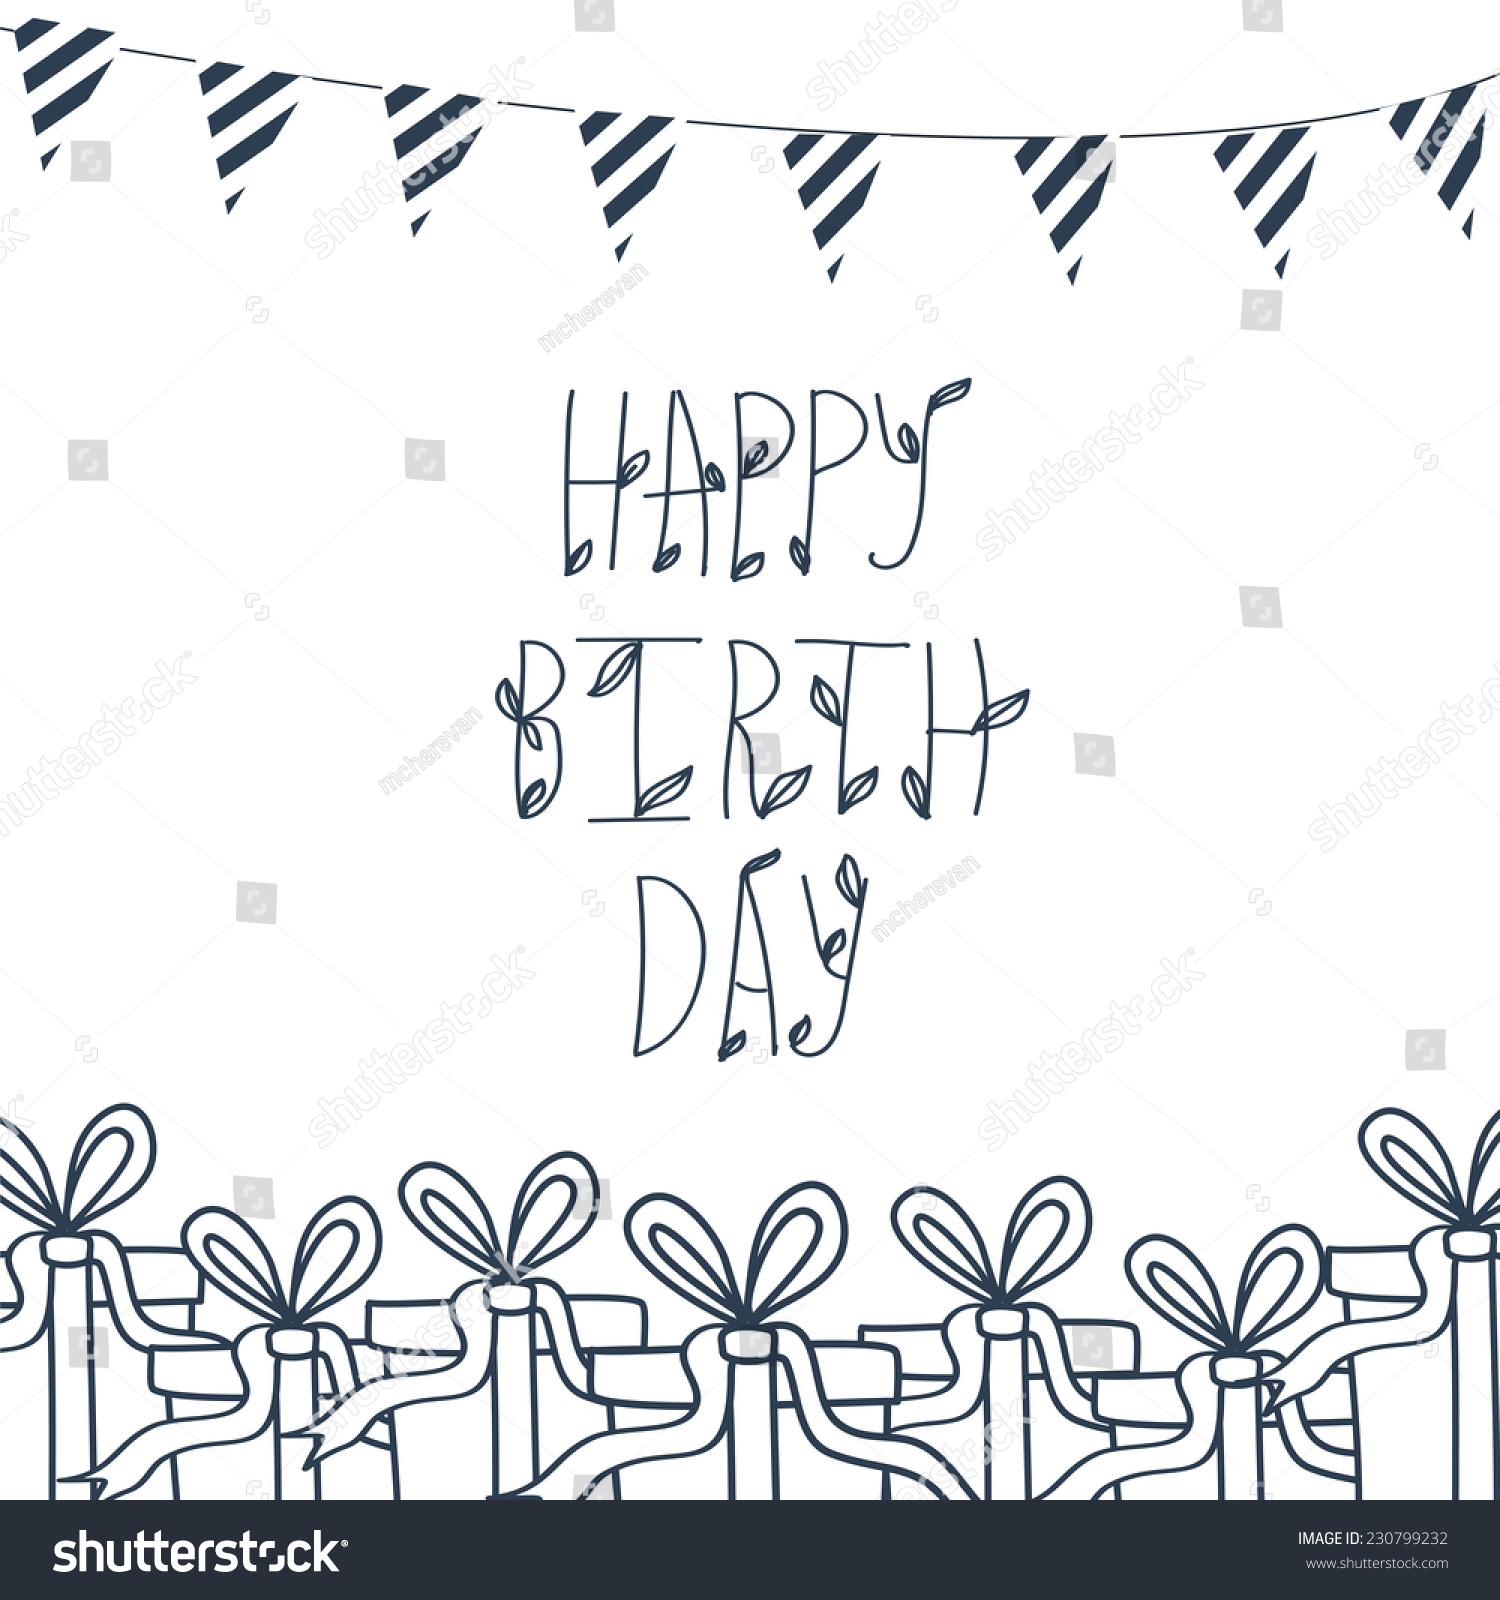 Birthday Greeting Card Hand Draw Background With Xmas Design And Merry Christmas Lettering